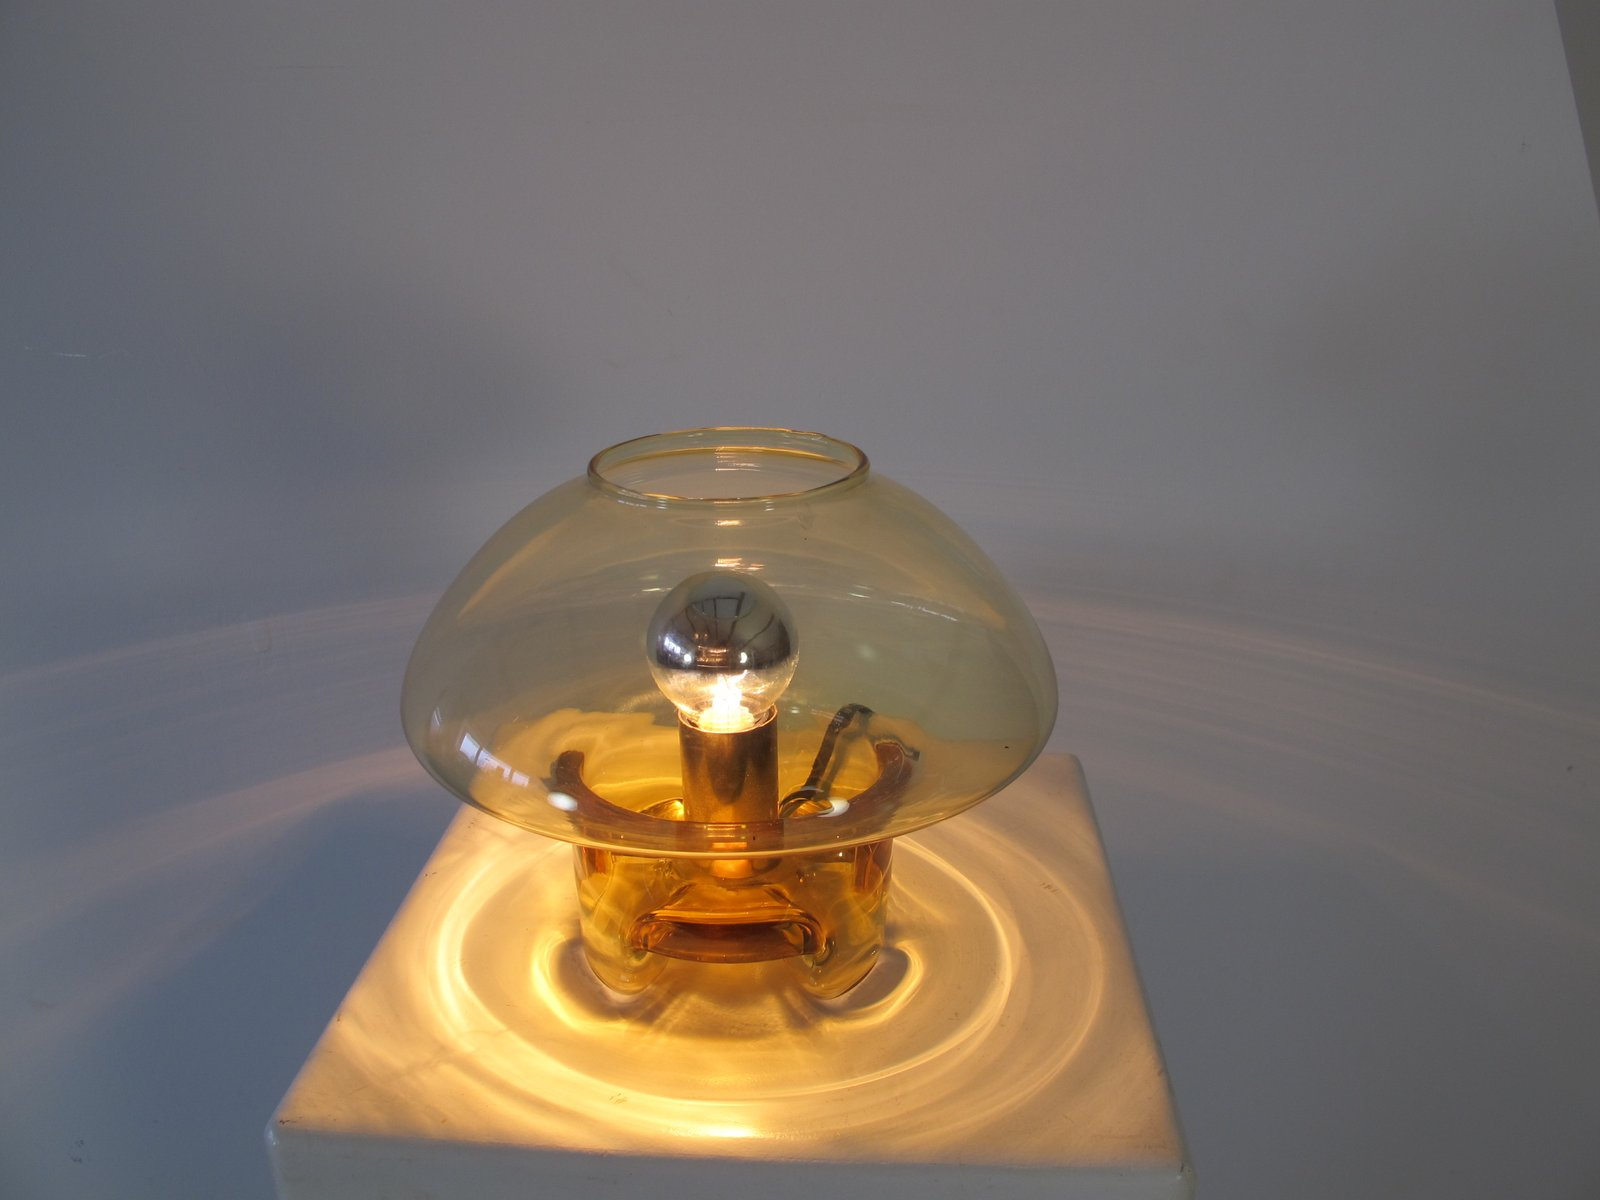 Vintage Glass Mushroom Shaped Table Lamp From Raak 1970s